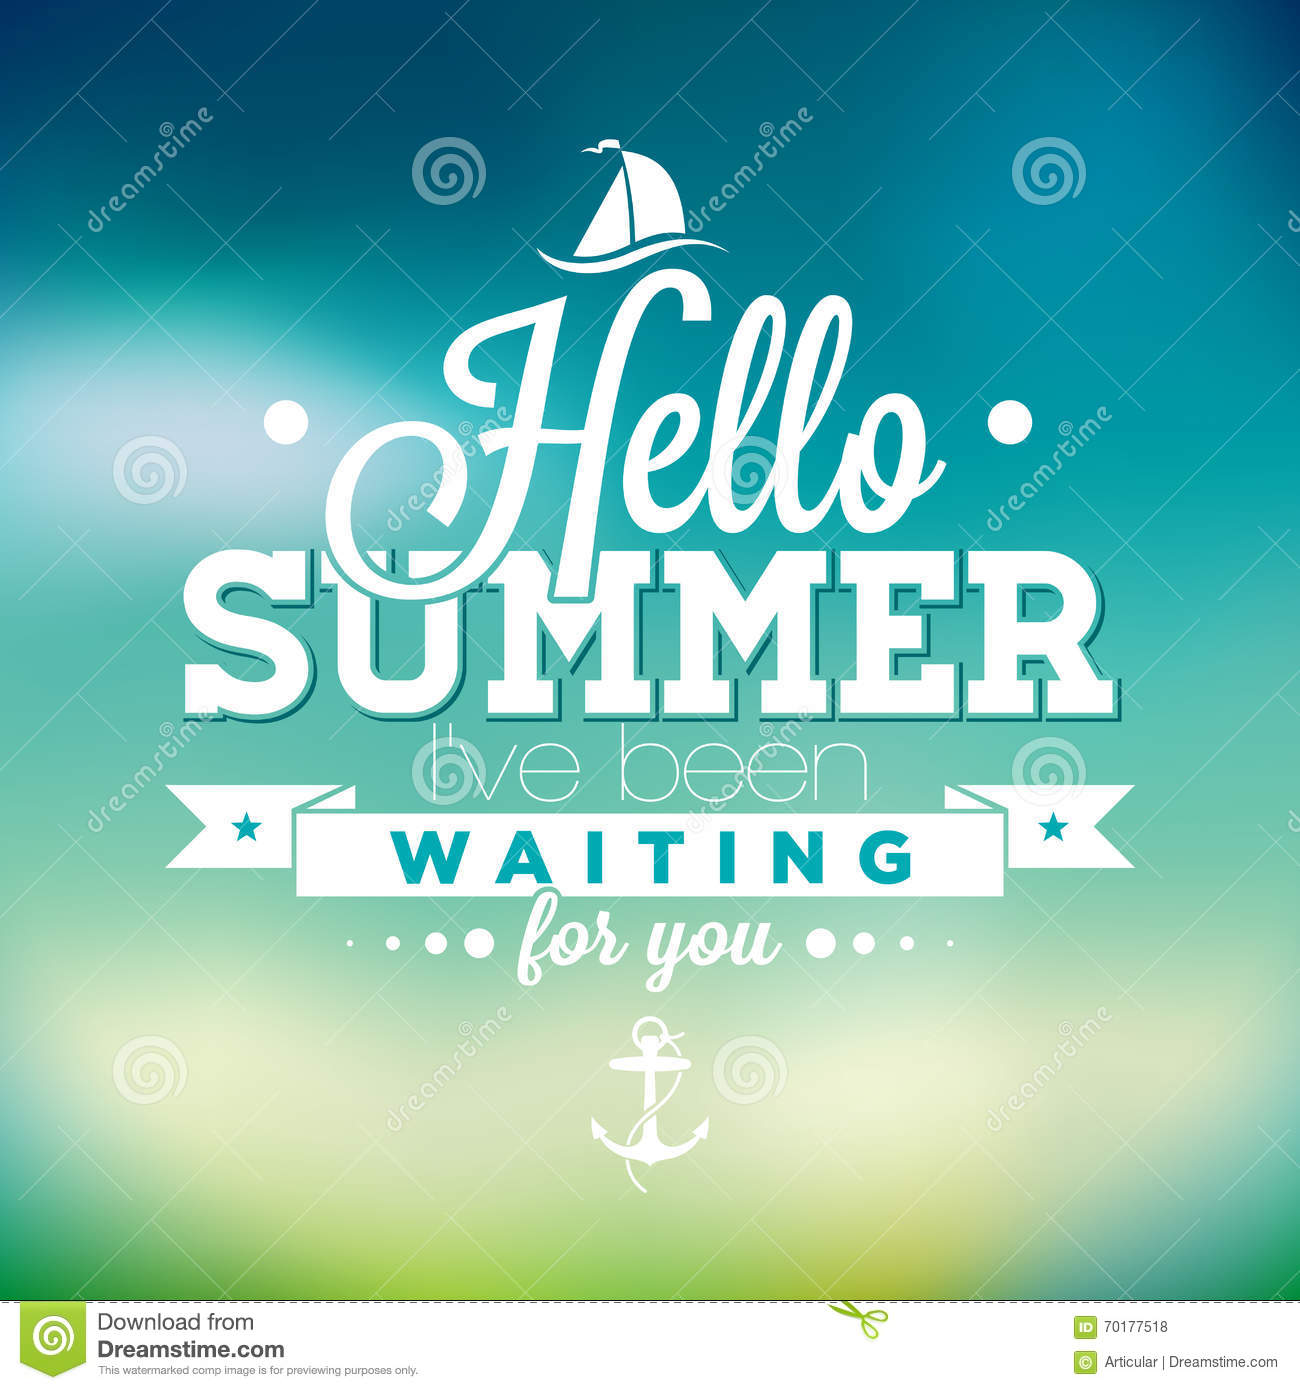 Dreaming Of Summer Quotes: Hello Summer, I've Been Waiting For You Inspiration Quote